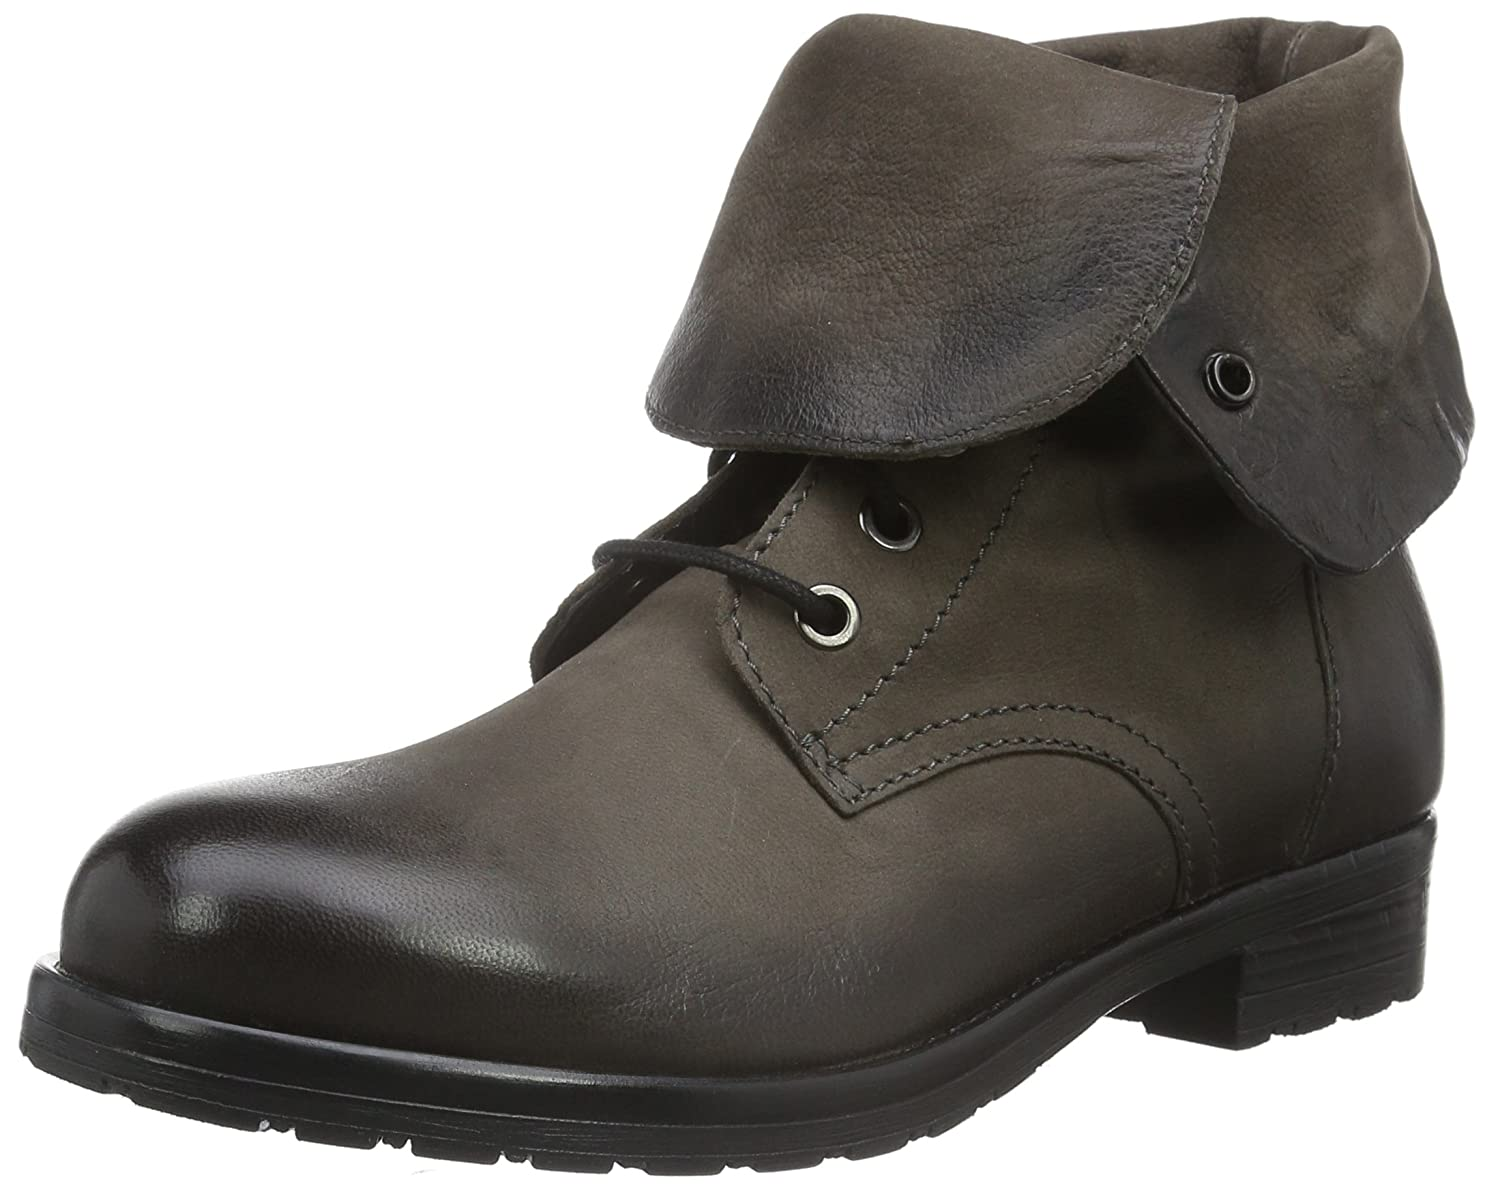 Clarks 19208 Minoa River, River, Bottes Clarks Motardes Femme Brun (Taupe Leather) a0dead3 - fast-weightloss-diet.space